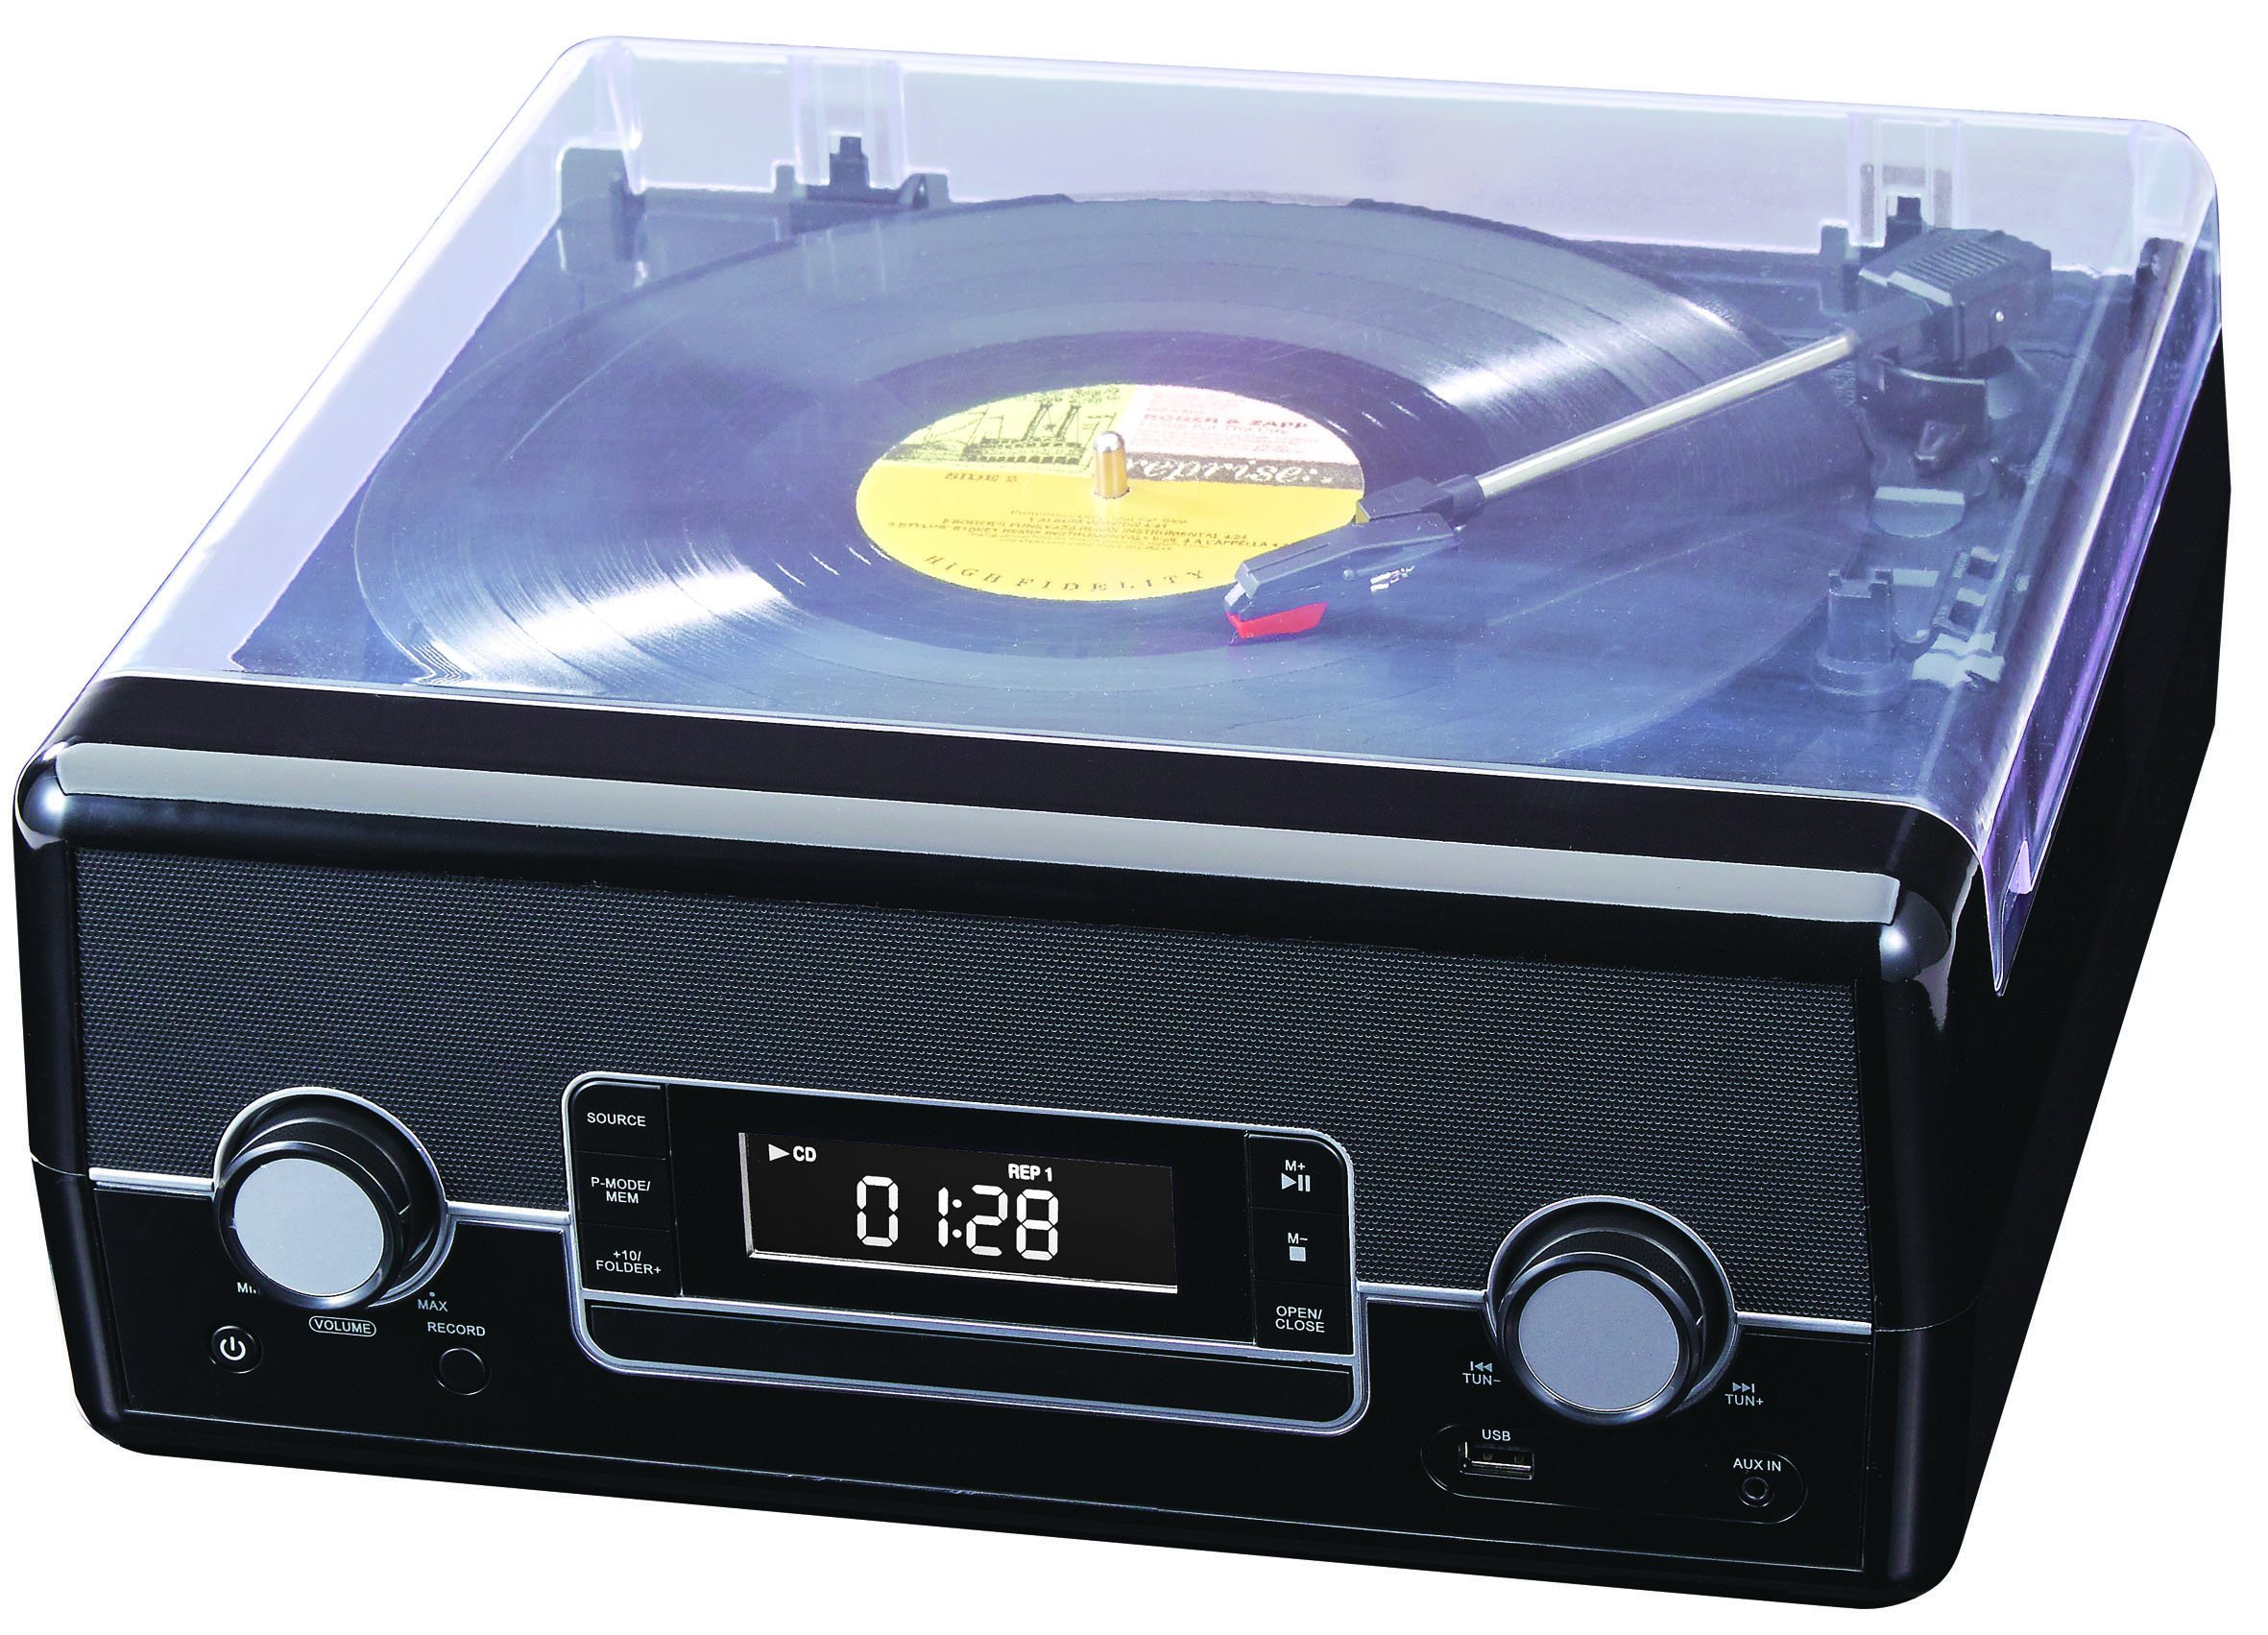 Deluxe Turntable with Direct Encoding and USB Charging + CD and Radio, Black